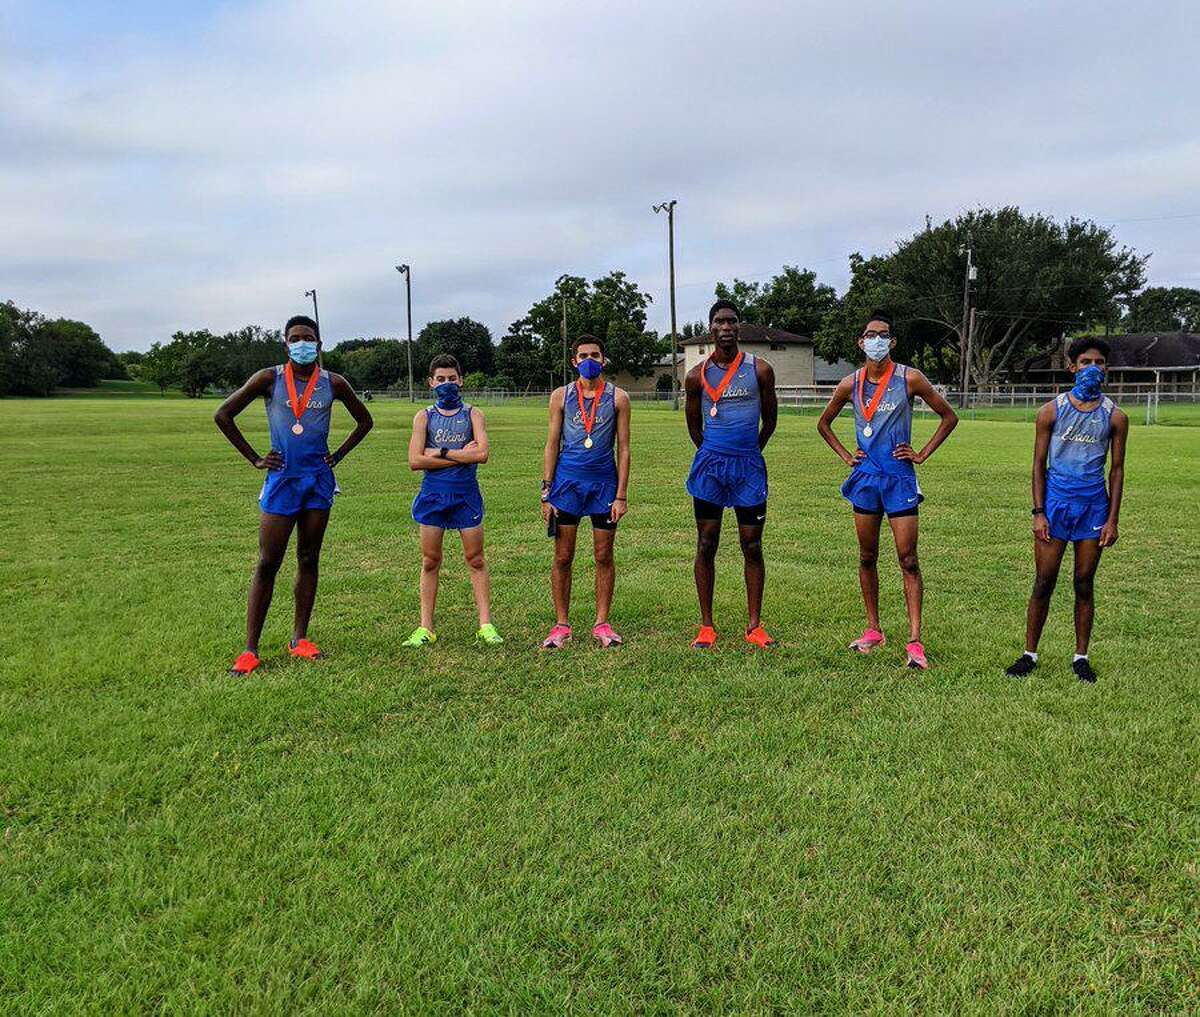 The Elkins boys cross country team won their division at the La Porte Bulldog Invitational, scoring only 23 points to lead a six-team race.